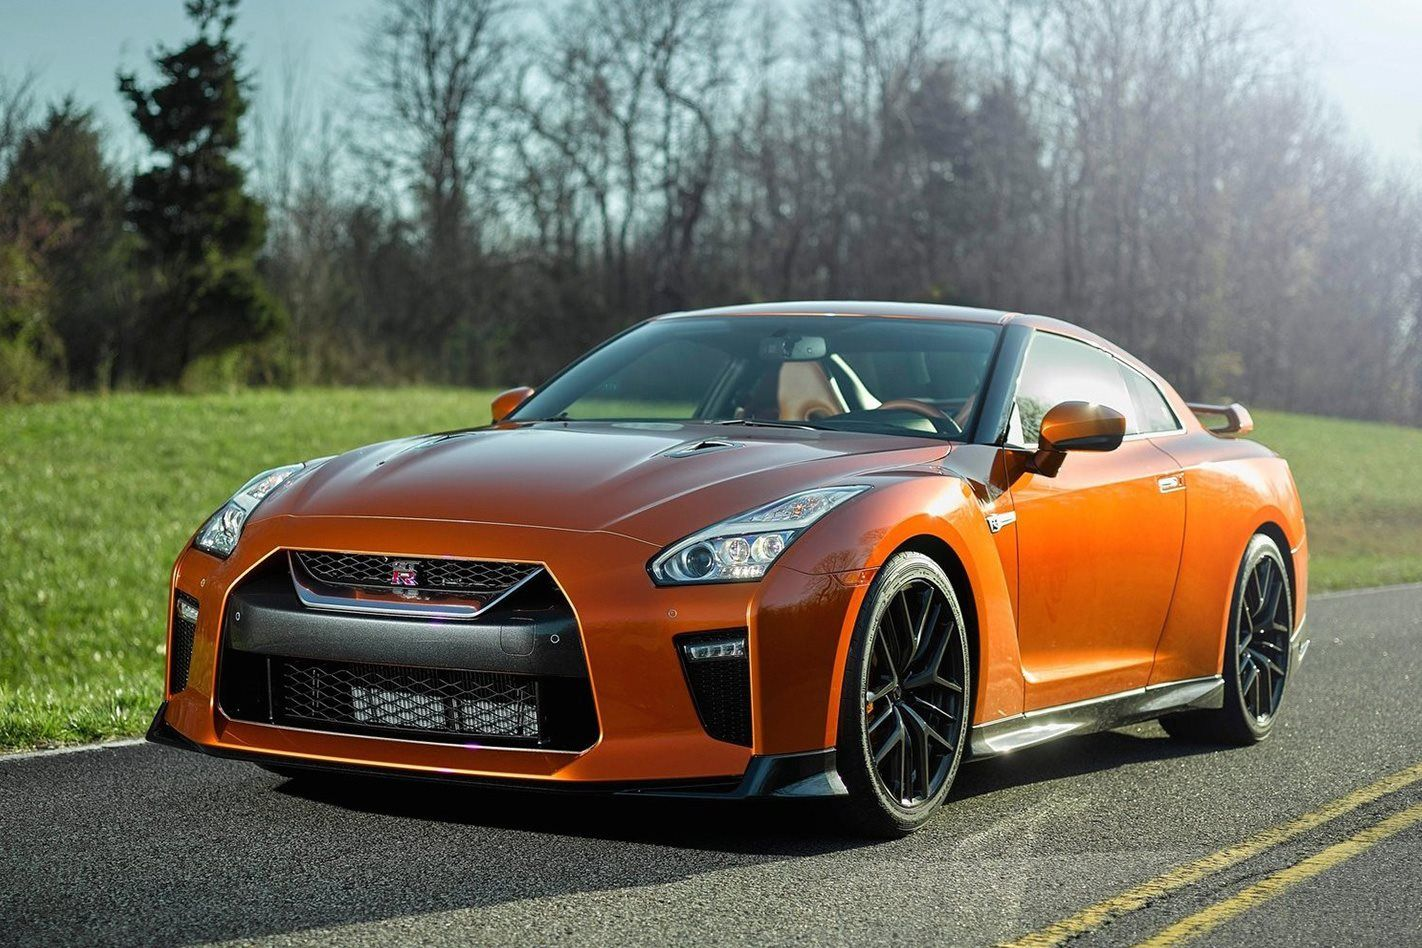 Nissan GT-R And 9 Other Insane Supercars From Cheap Brands